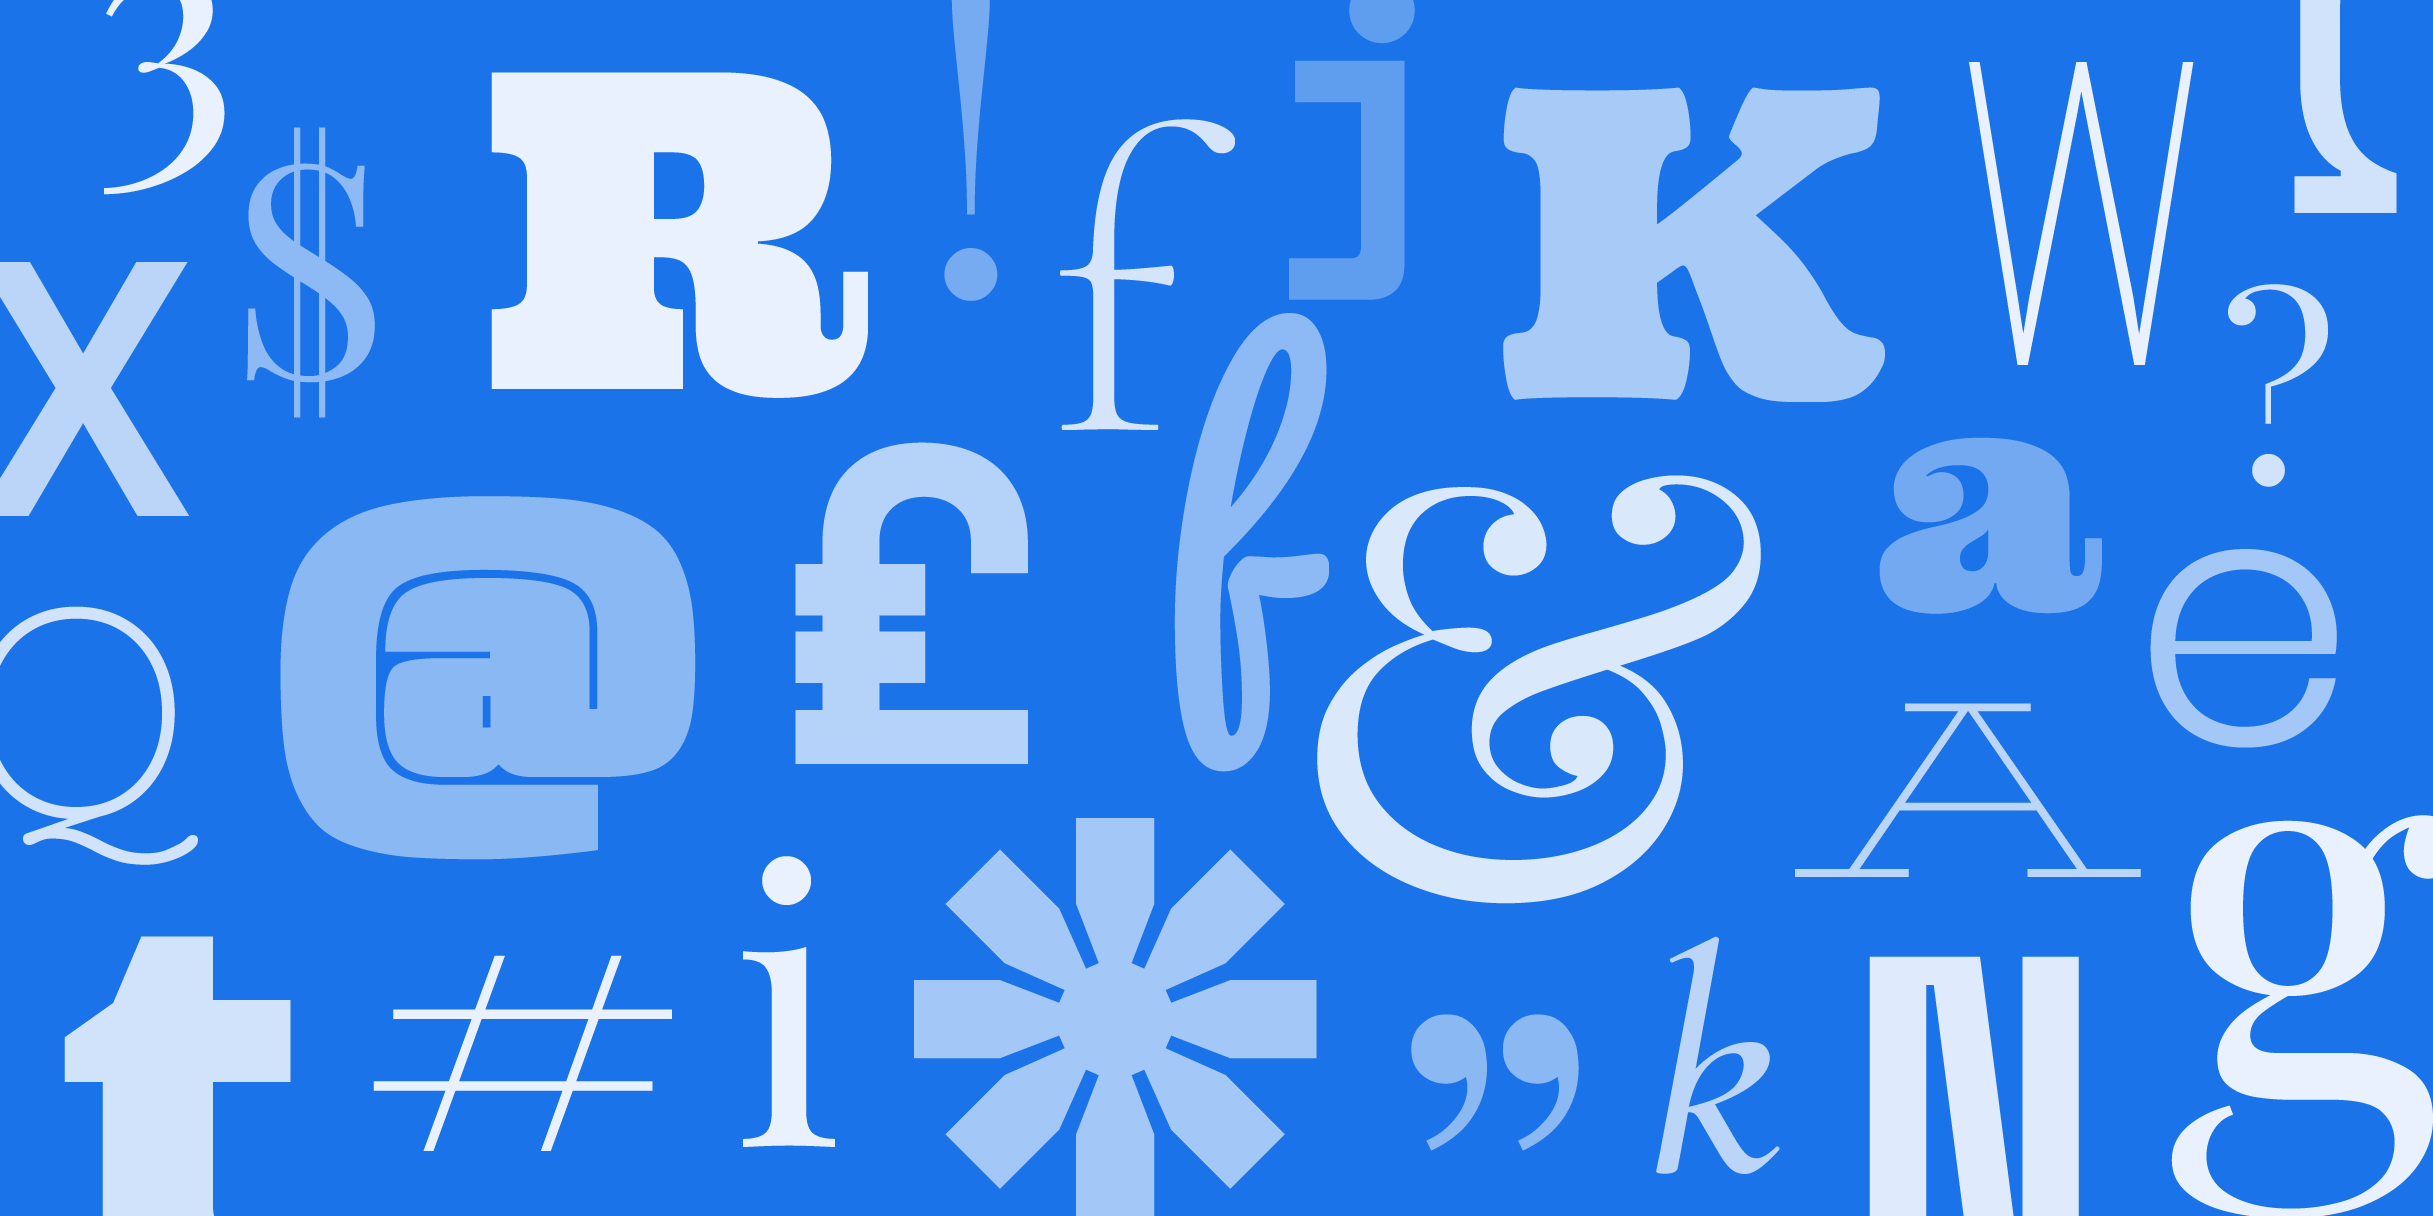 googlefonts_collection_blue.png